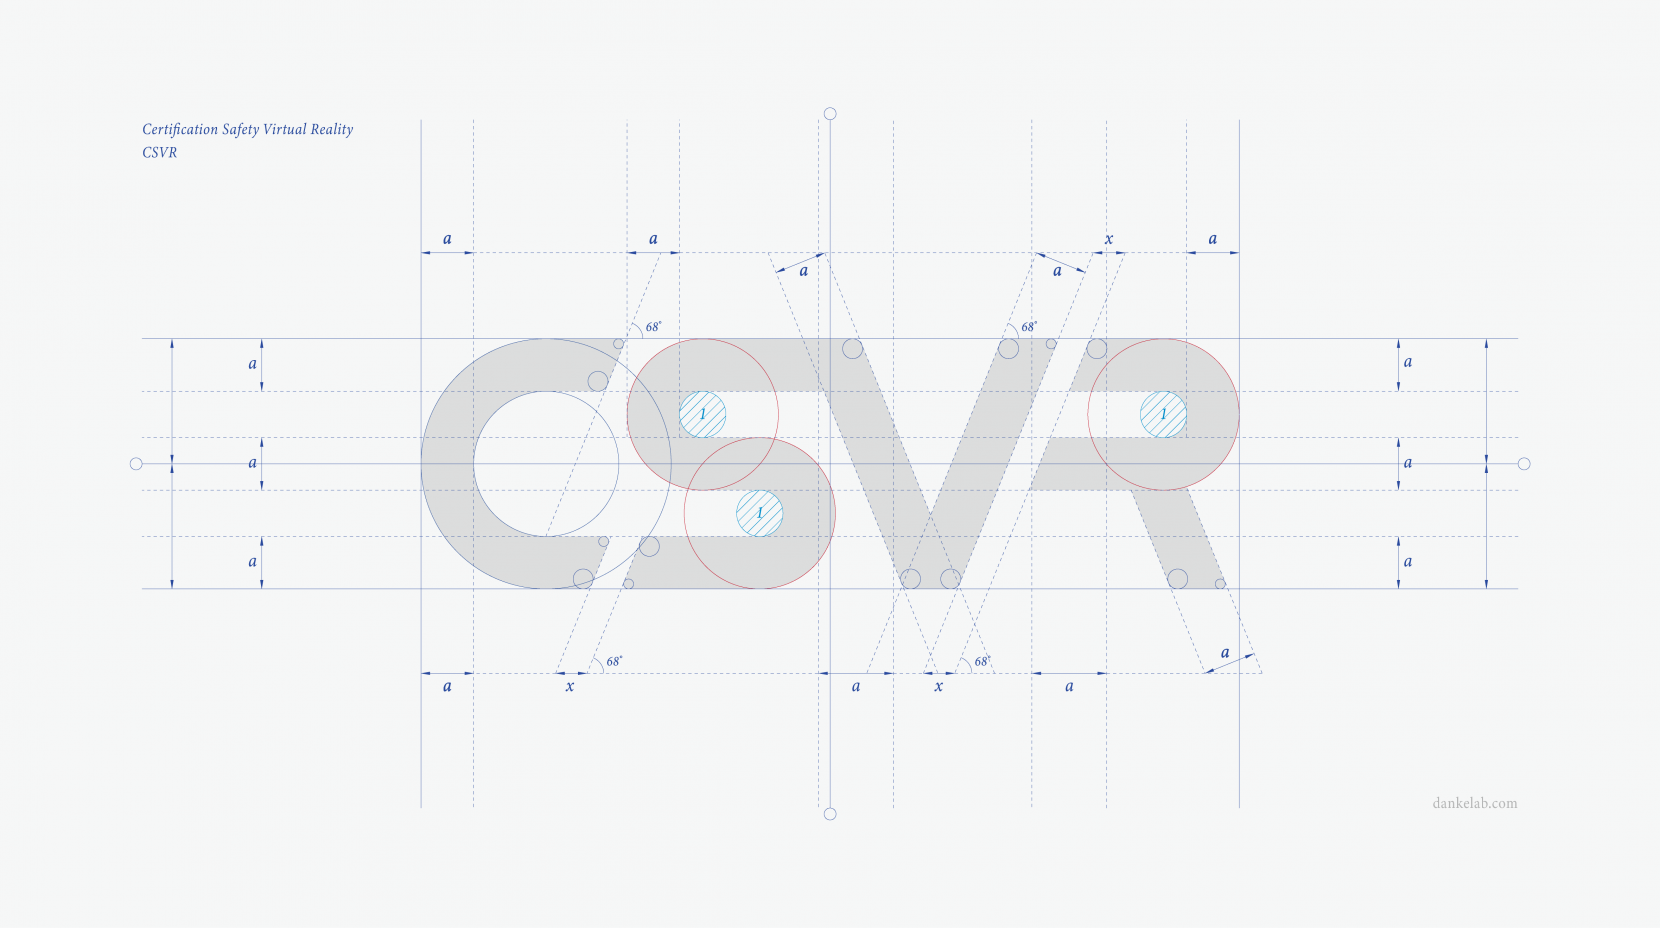 Dankelab_Golden_Ratio_Csvr